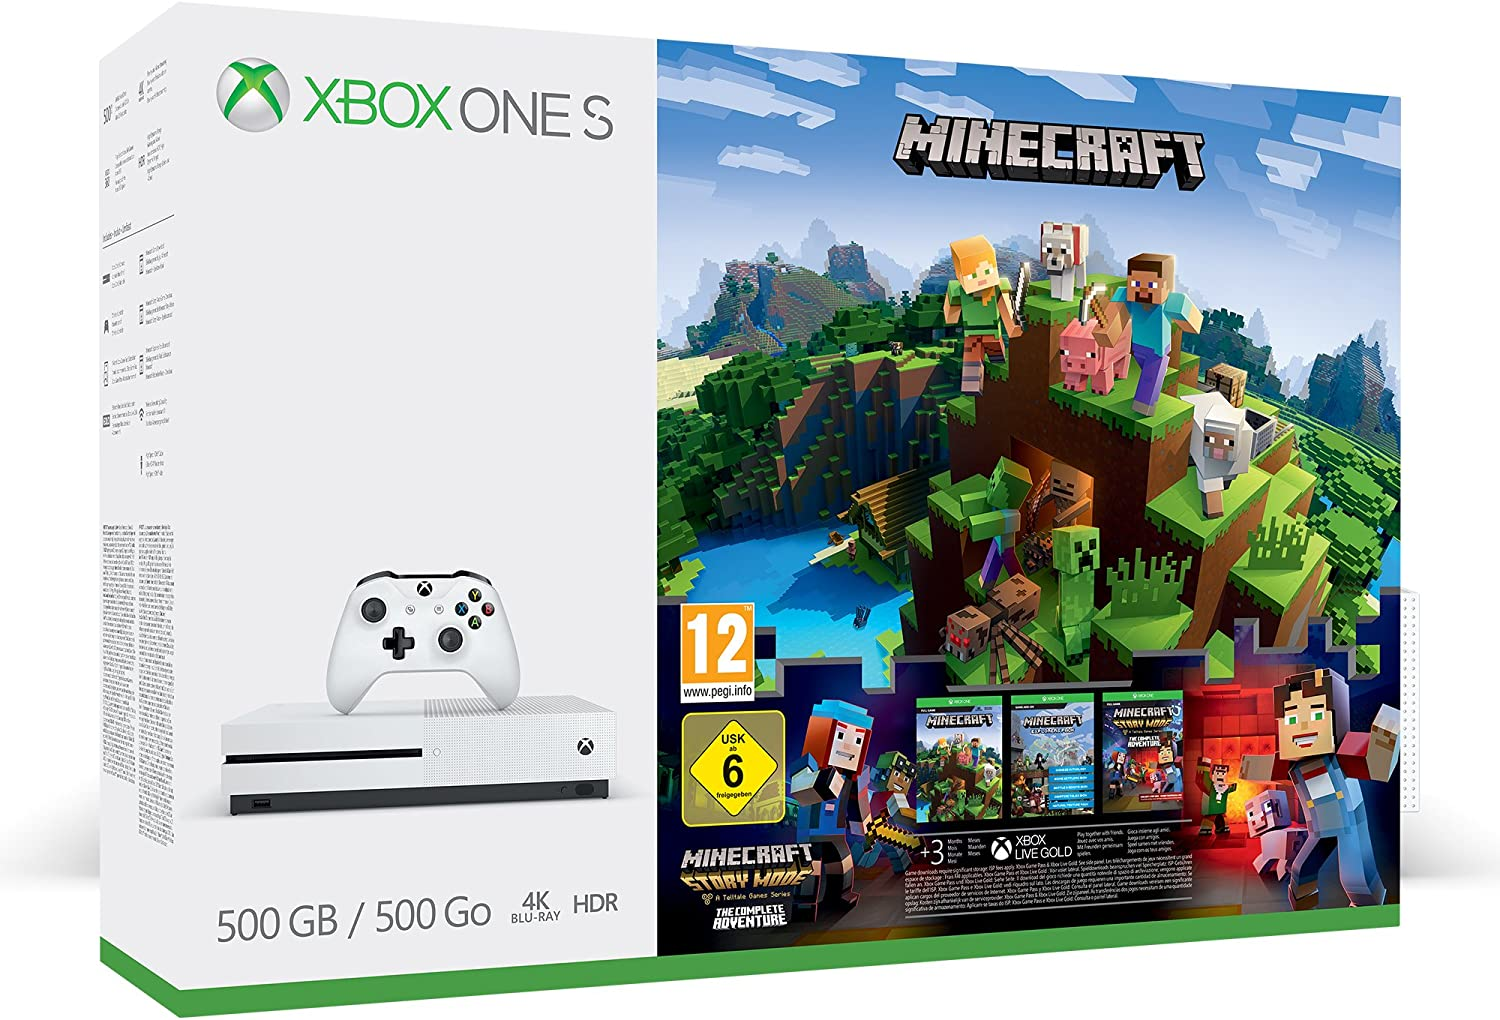 Xbox One - Consola S De 500 GB + Minecraft +3M Live Gold: Amazon.es: Videojuegos